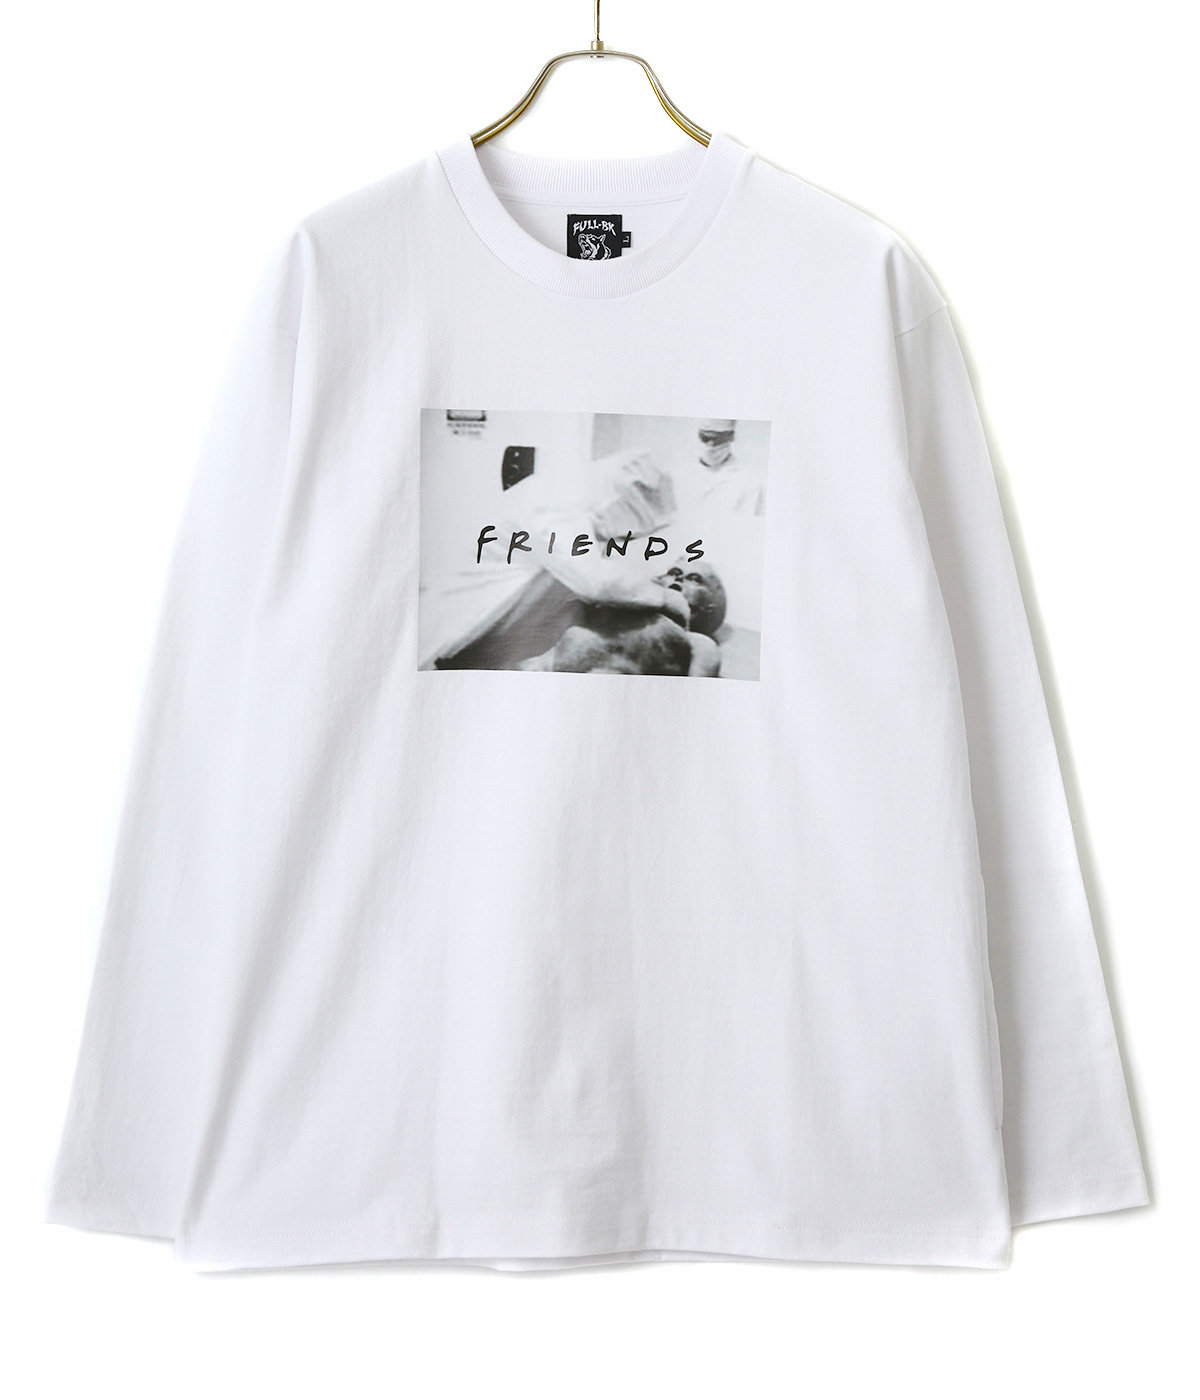 FULL-BK x John's By JOHNNY ROSWELL L/S TEE